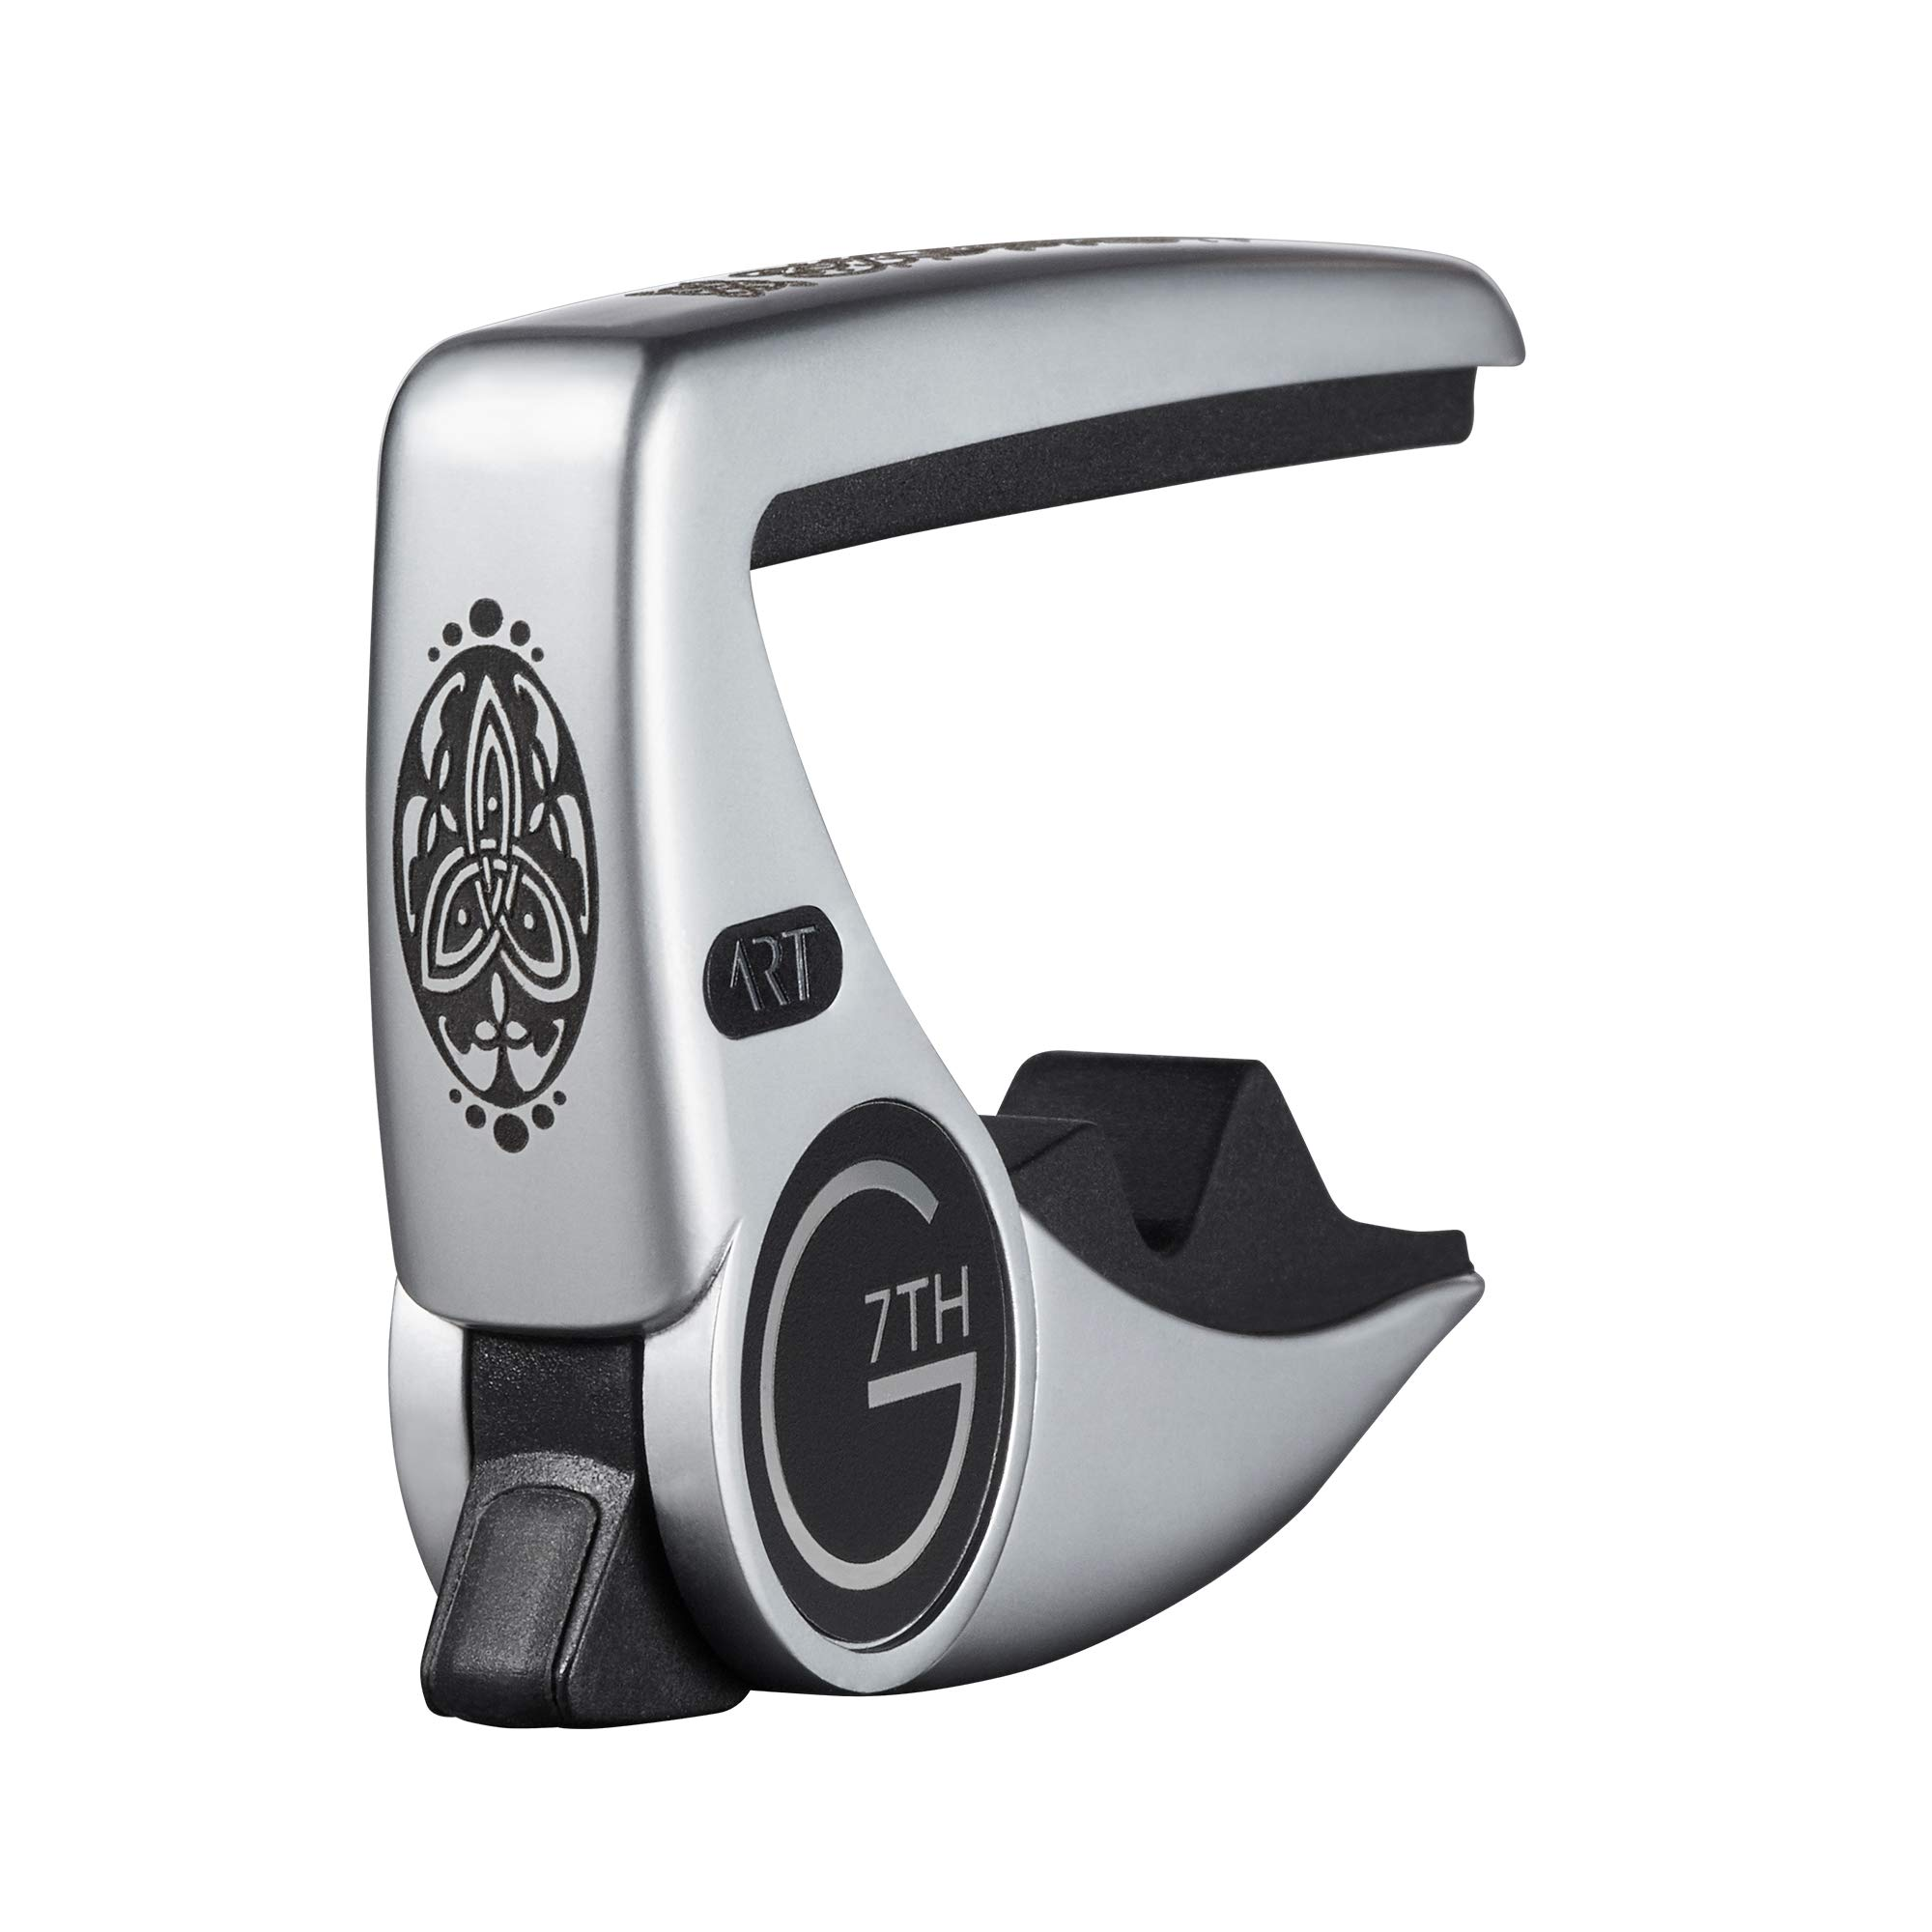 G7th Performance-3 ART Capo Acoustic Celtic Silver by G7th